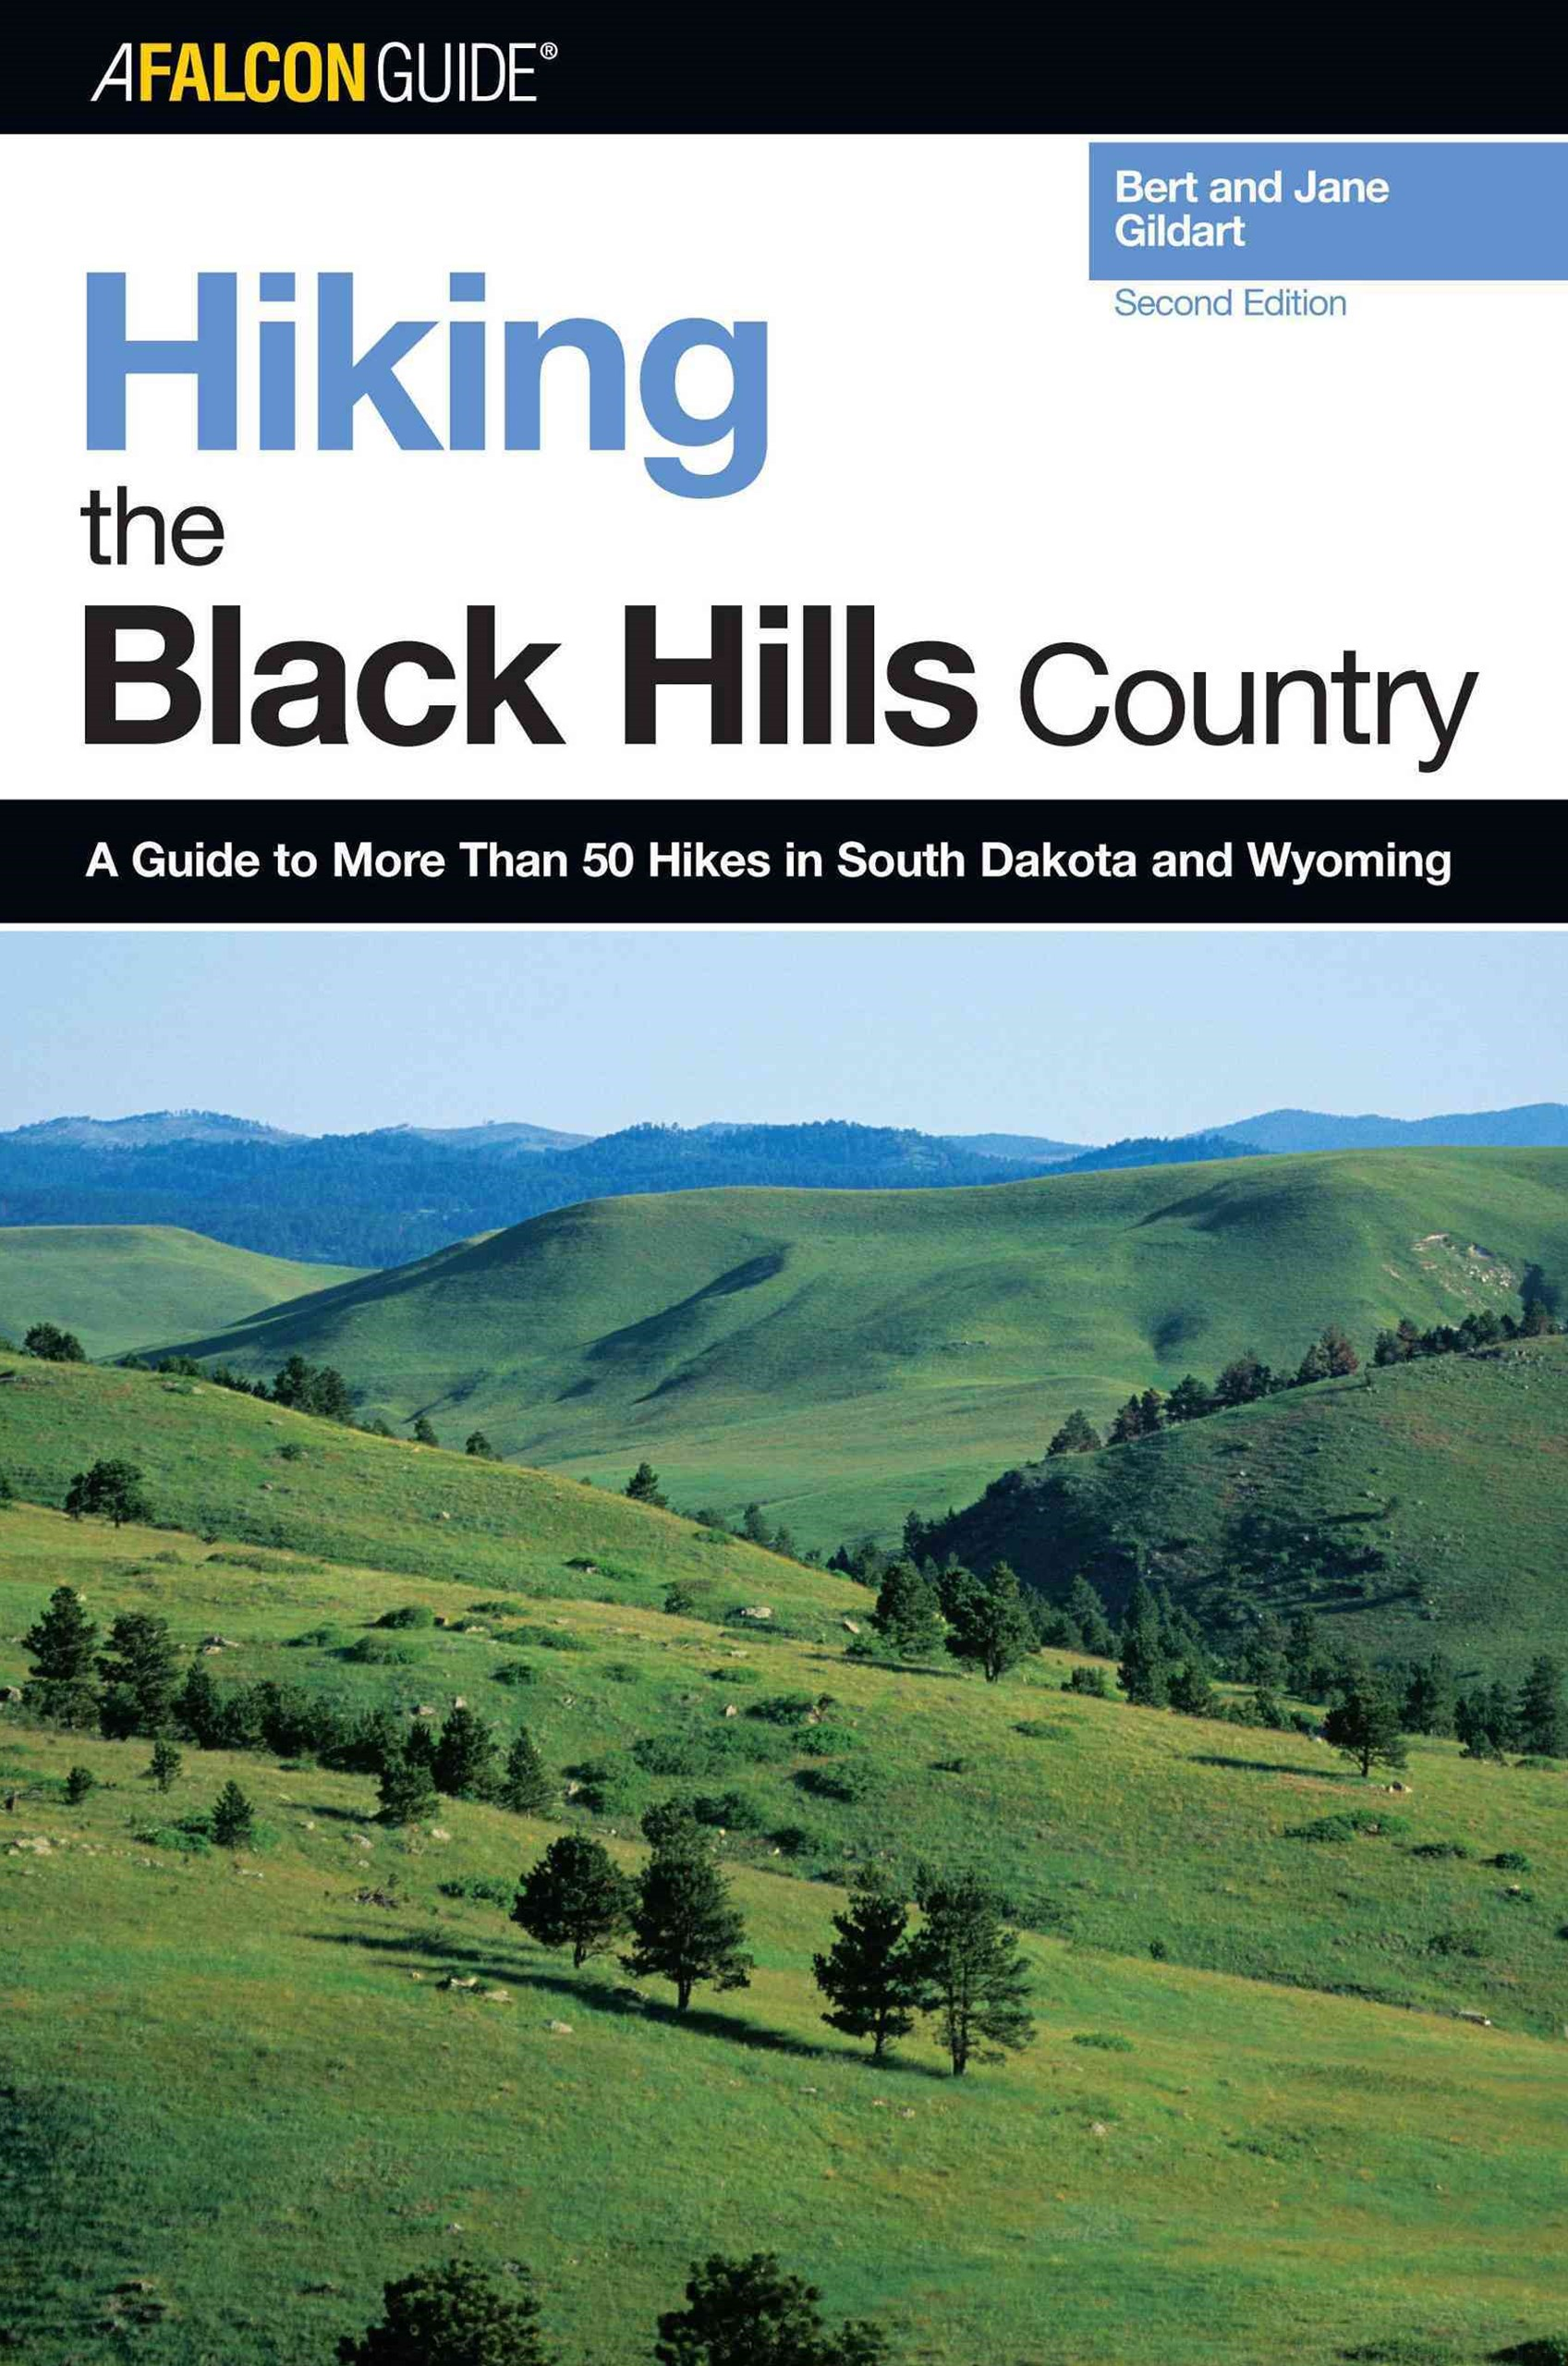 Hiking the Black Hills Country